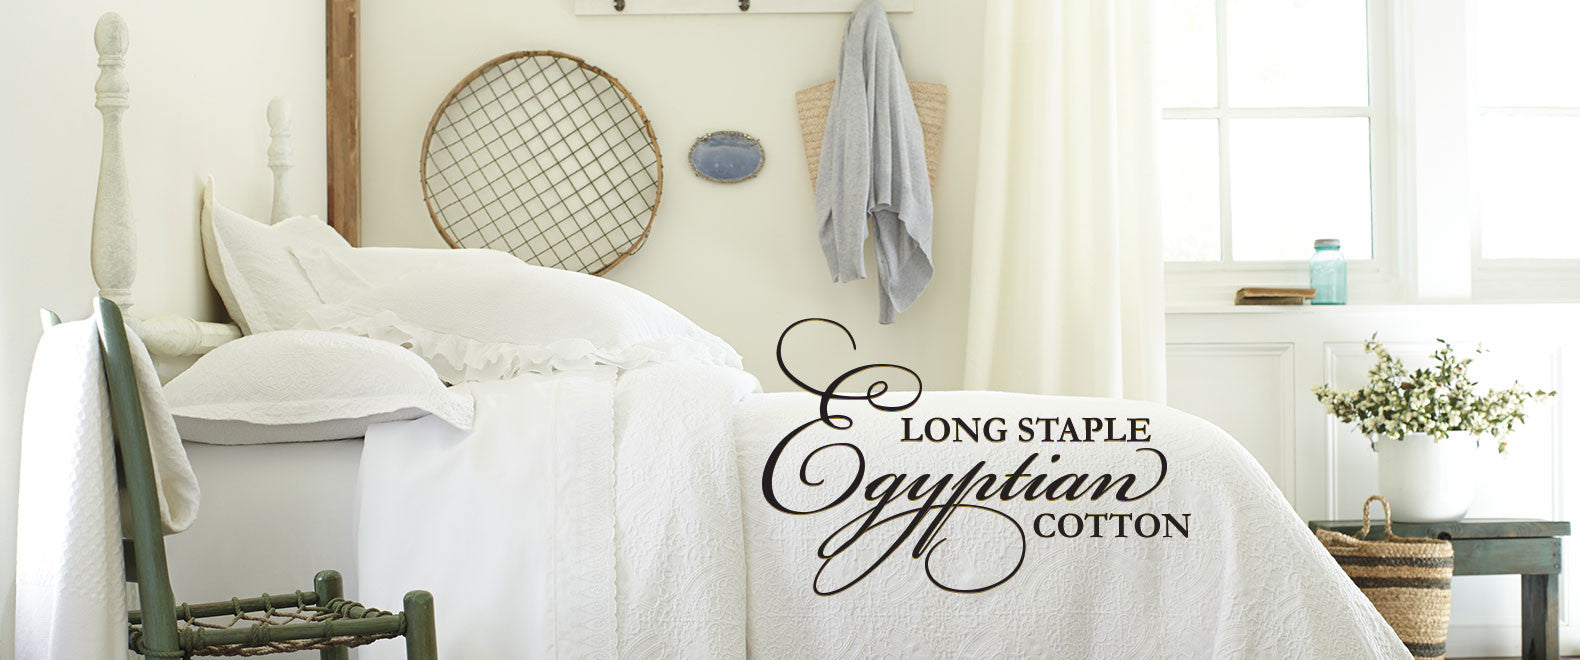 long-staple Egyptian cotton bedding